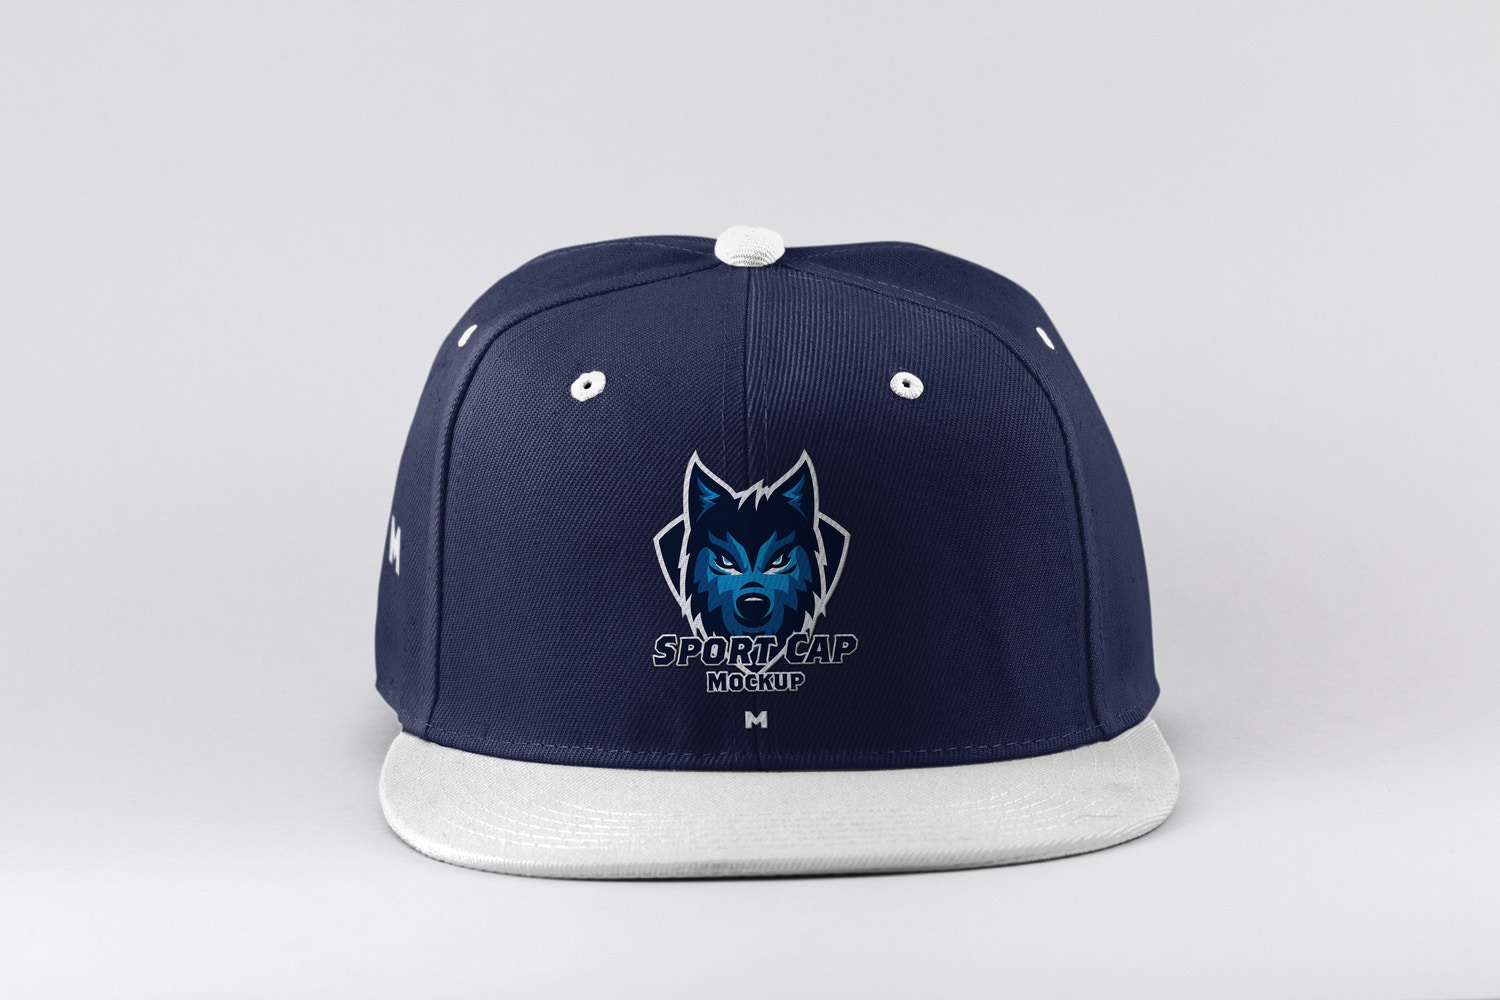 Sports Cap Front View Mockup by Original Mockups on Original Mockups